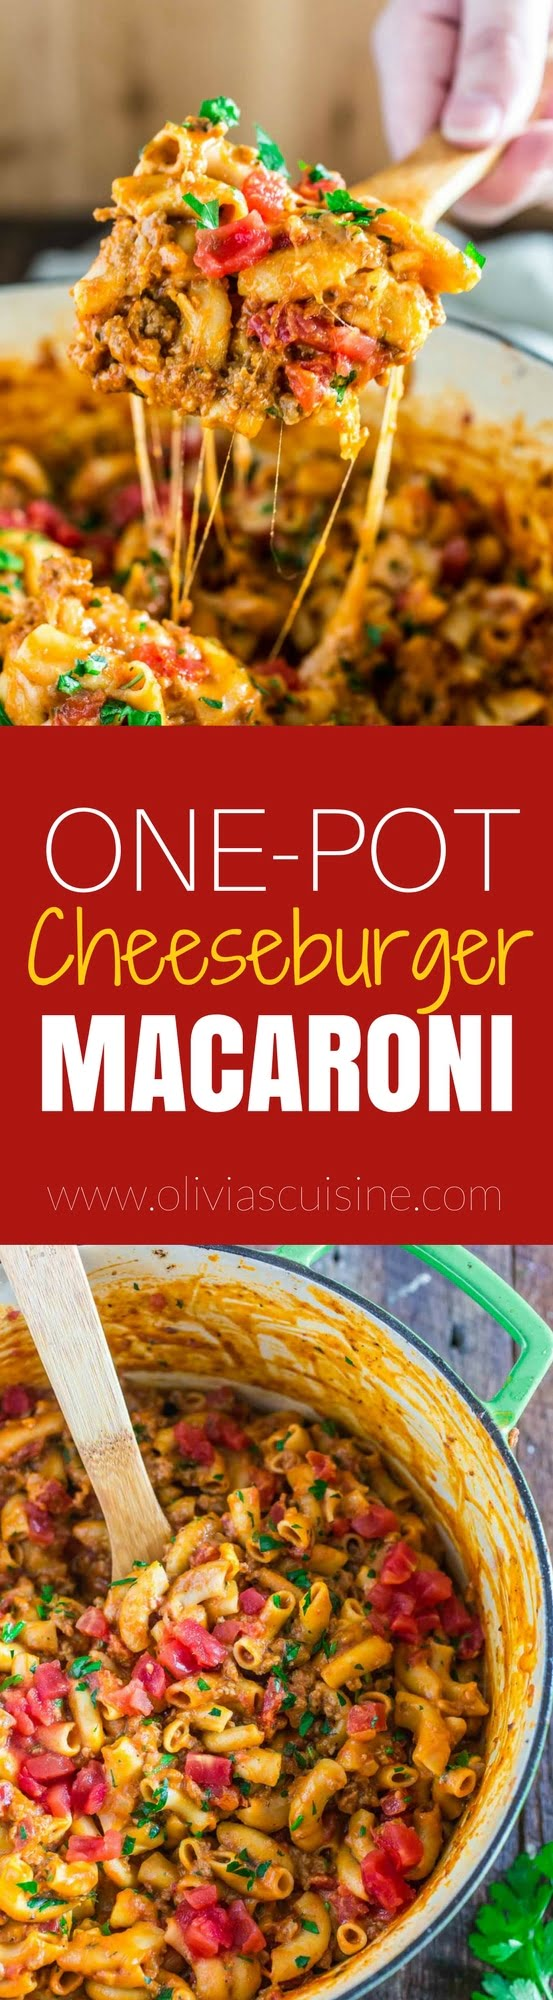 One-Pot Cheeseburger Macaroni | www.oliviascuisine.com | This creamy and ultra cheesy One-Pot Cheeseburger Macaroni is the answer to your prayers: easy, comforting and ready in less than 30 minutes!